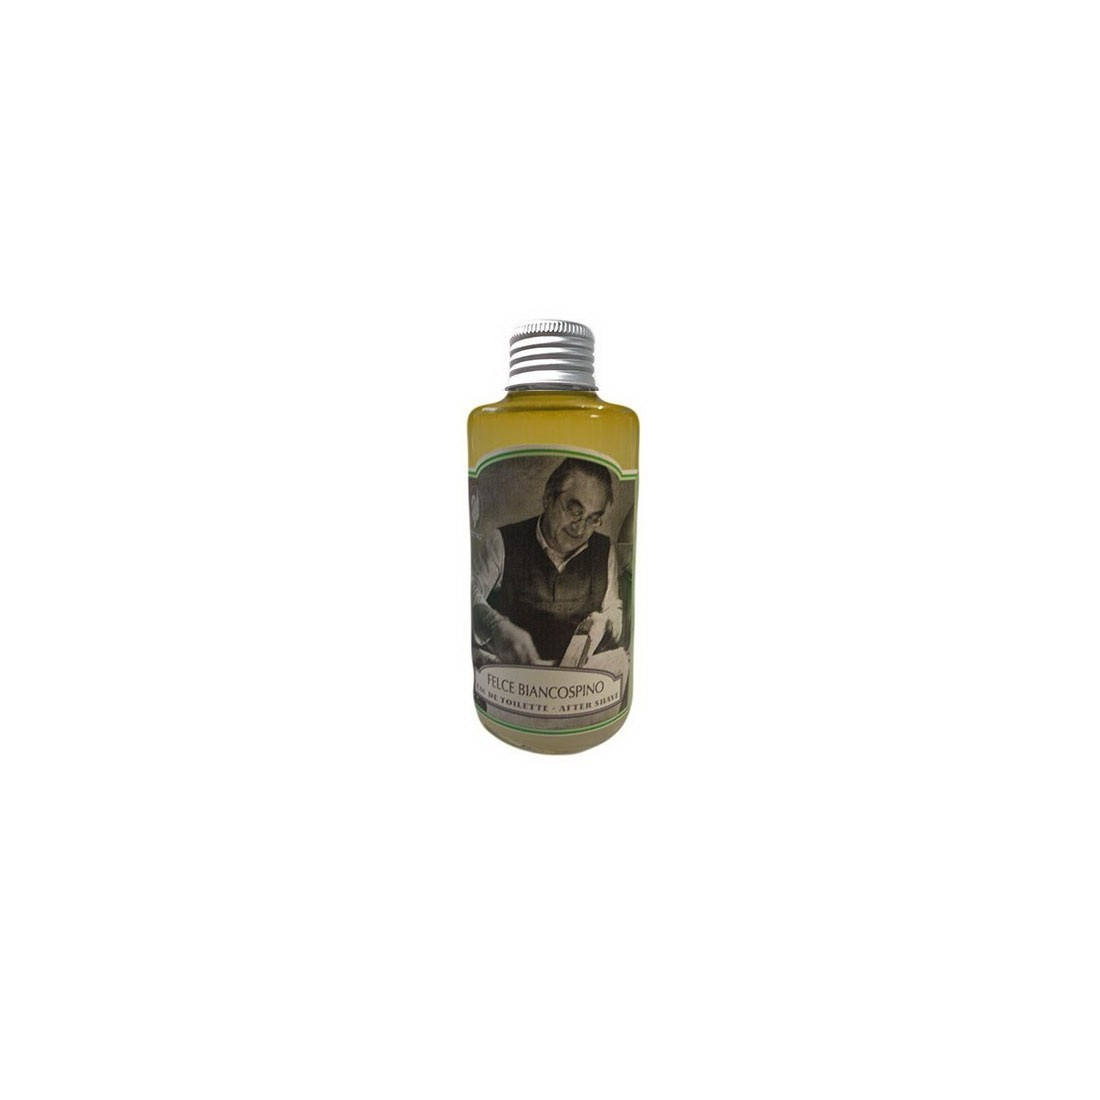 Extro Felce Biancospino After shave 125ml 5608 Extro Eau de Cologne €12.50  product reduction percent€10.08 1c33f3ed362